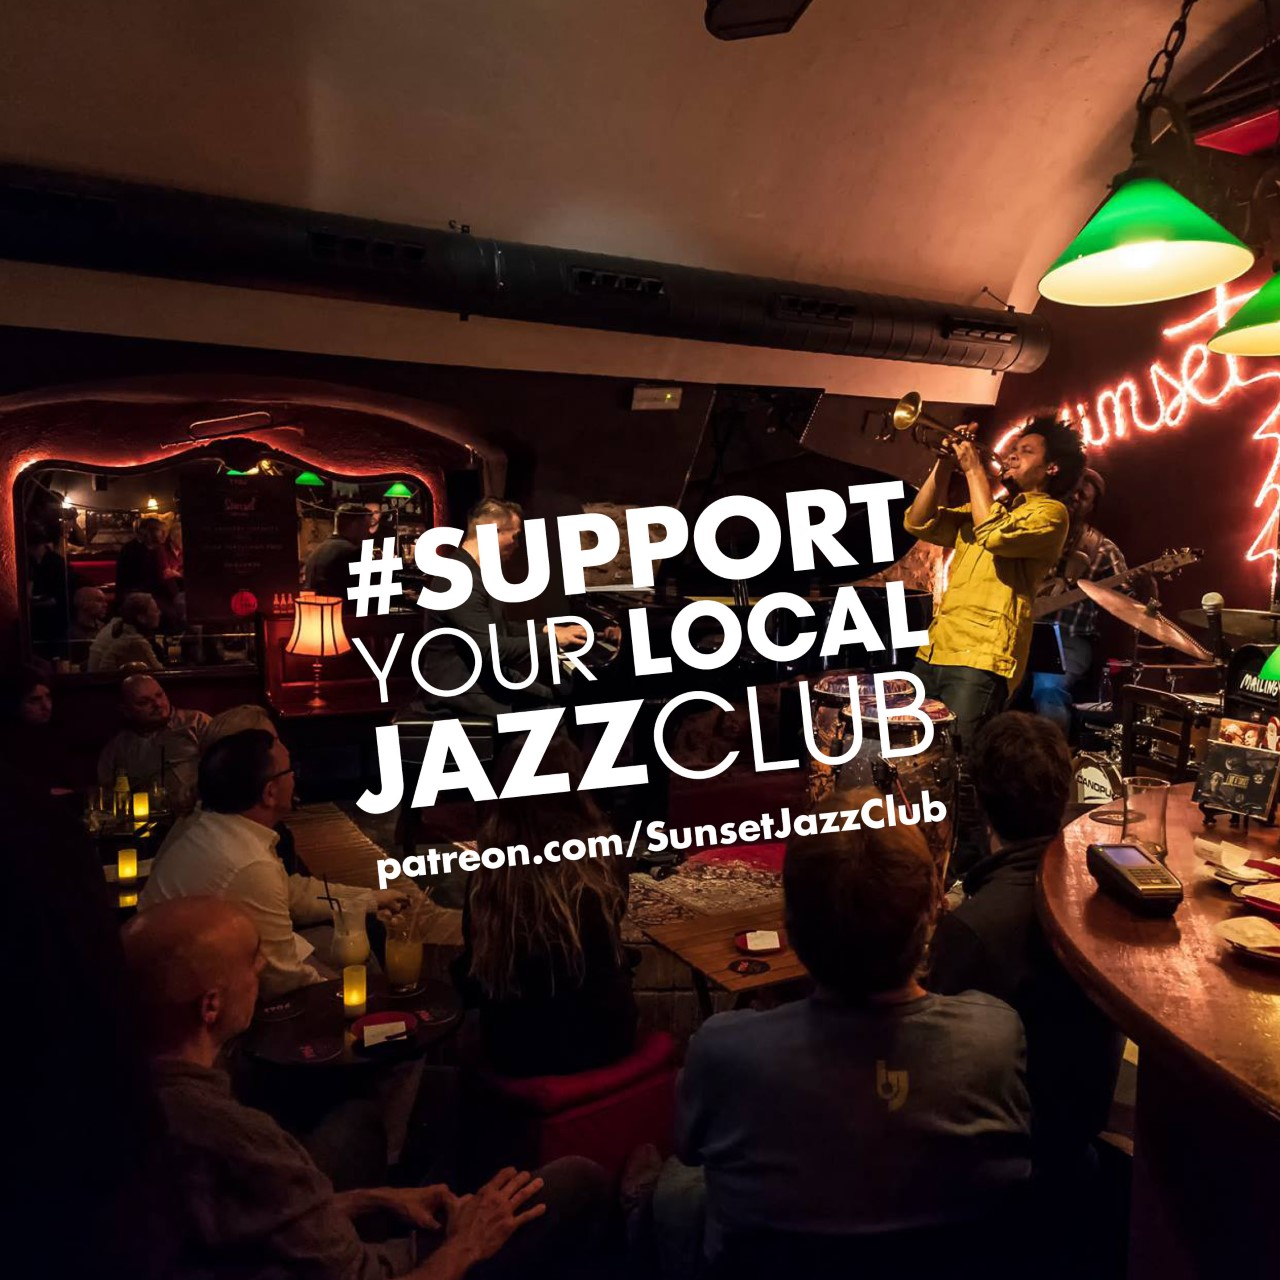 Comunicado de apoyo a los clubs de jazz, Sunset Jazz Club y otras iniciativas